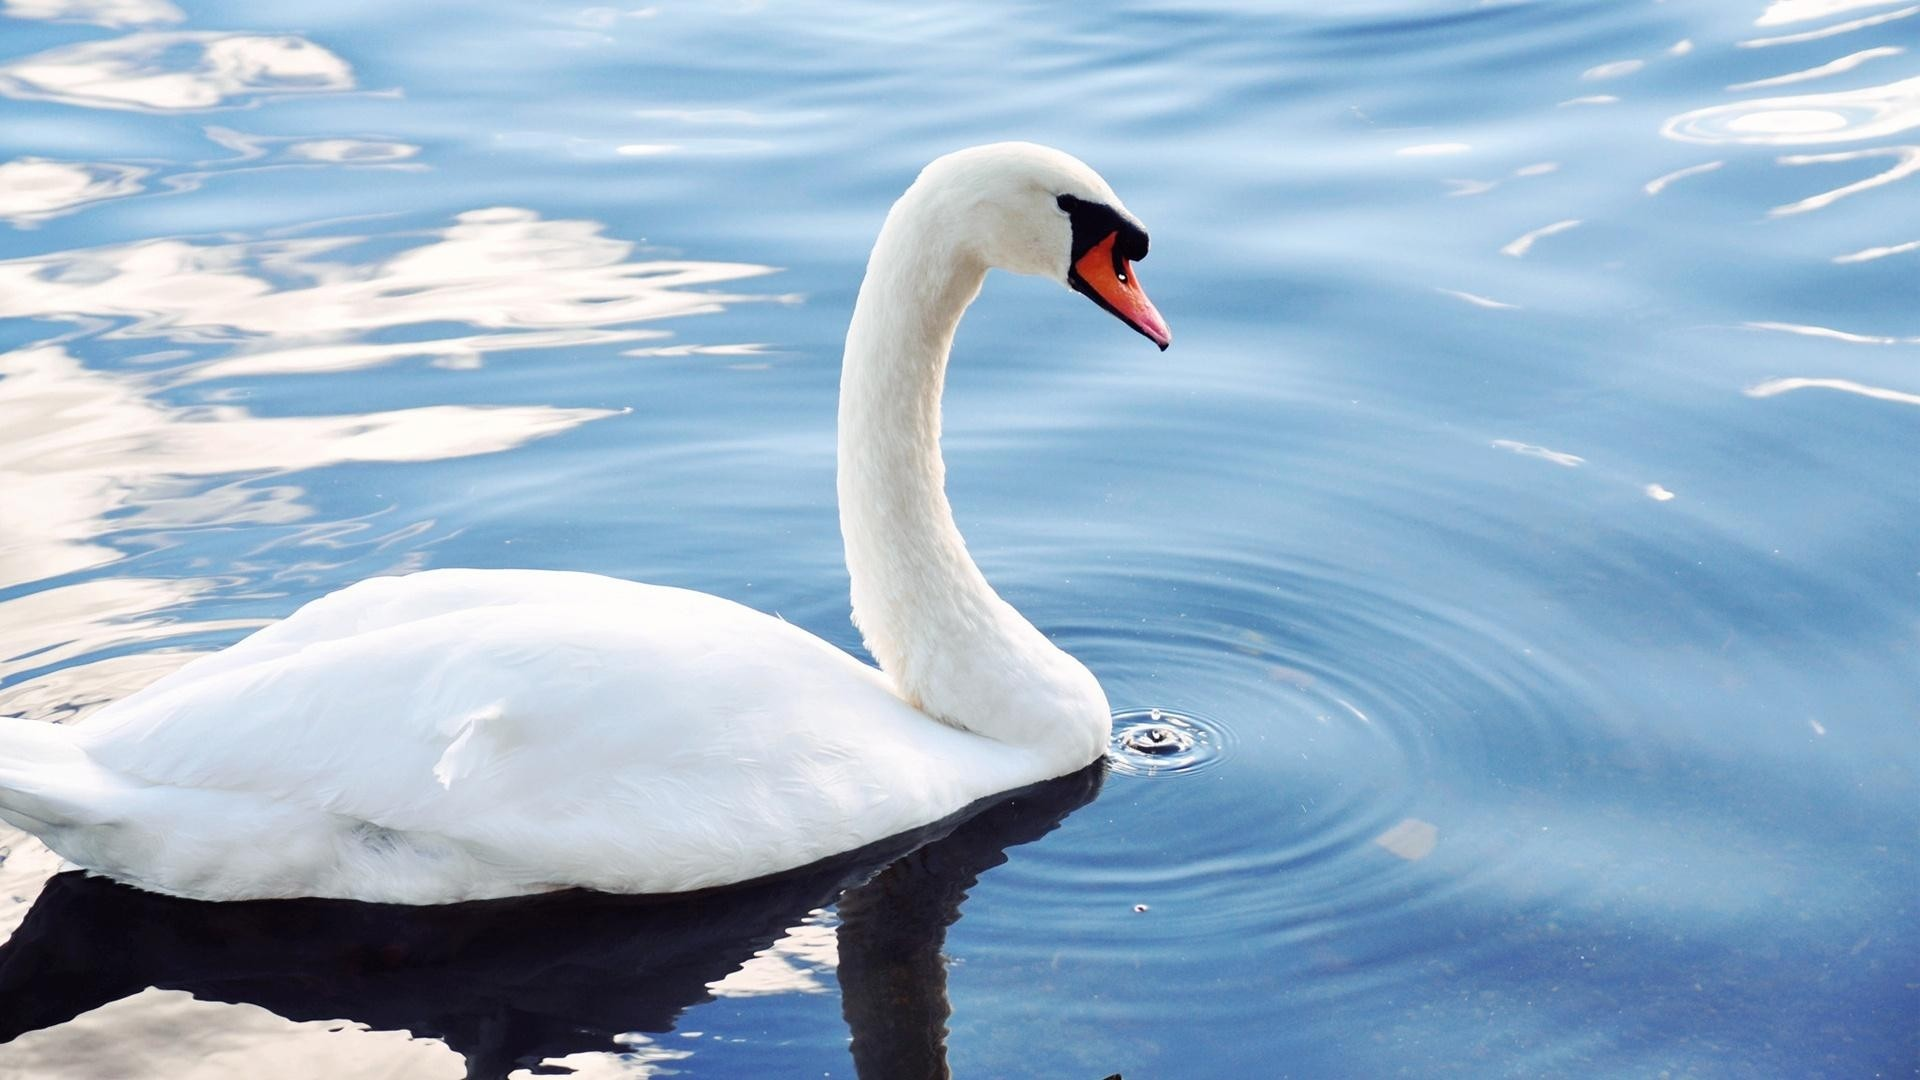 Res: 1920x1080, Animals images Swan HD wallpaper and background photos